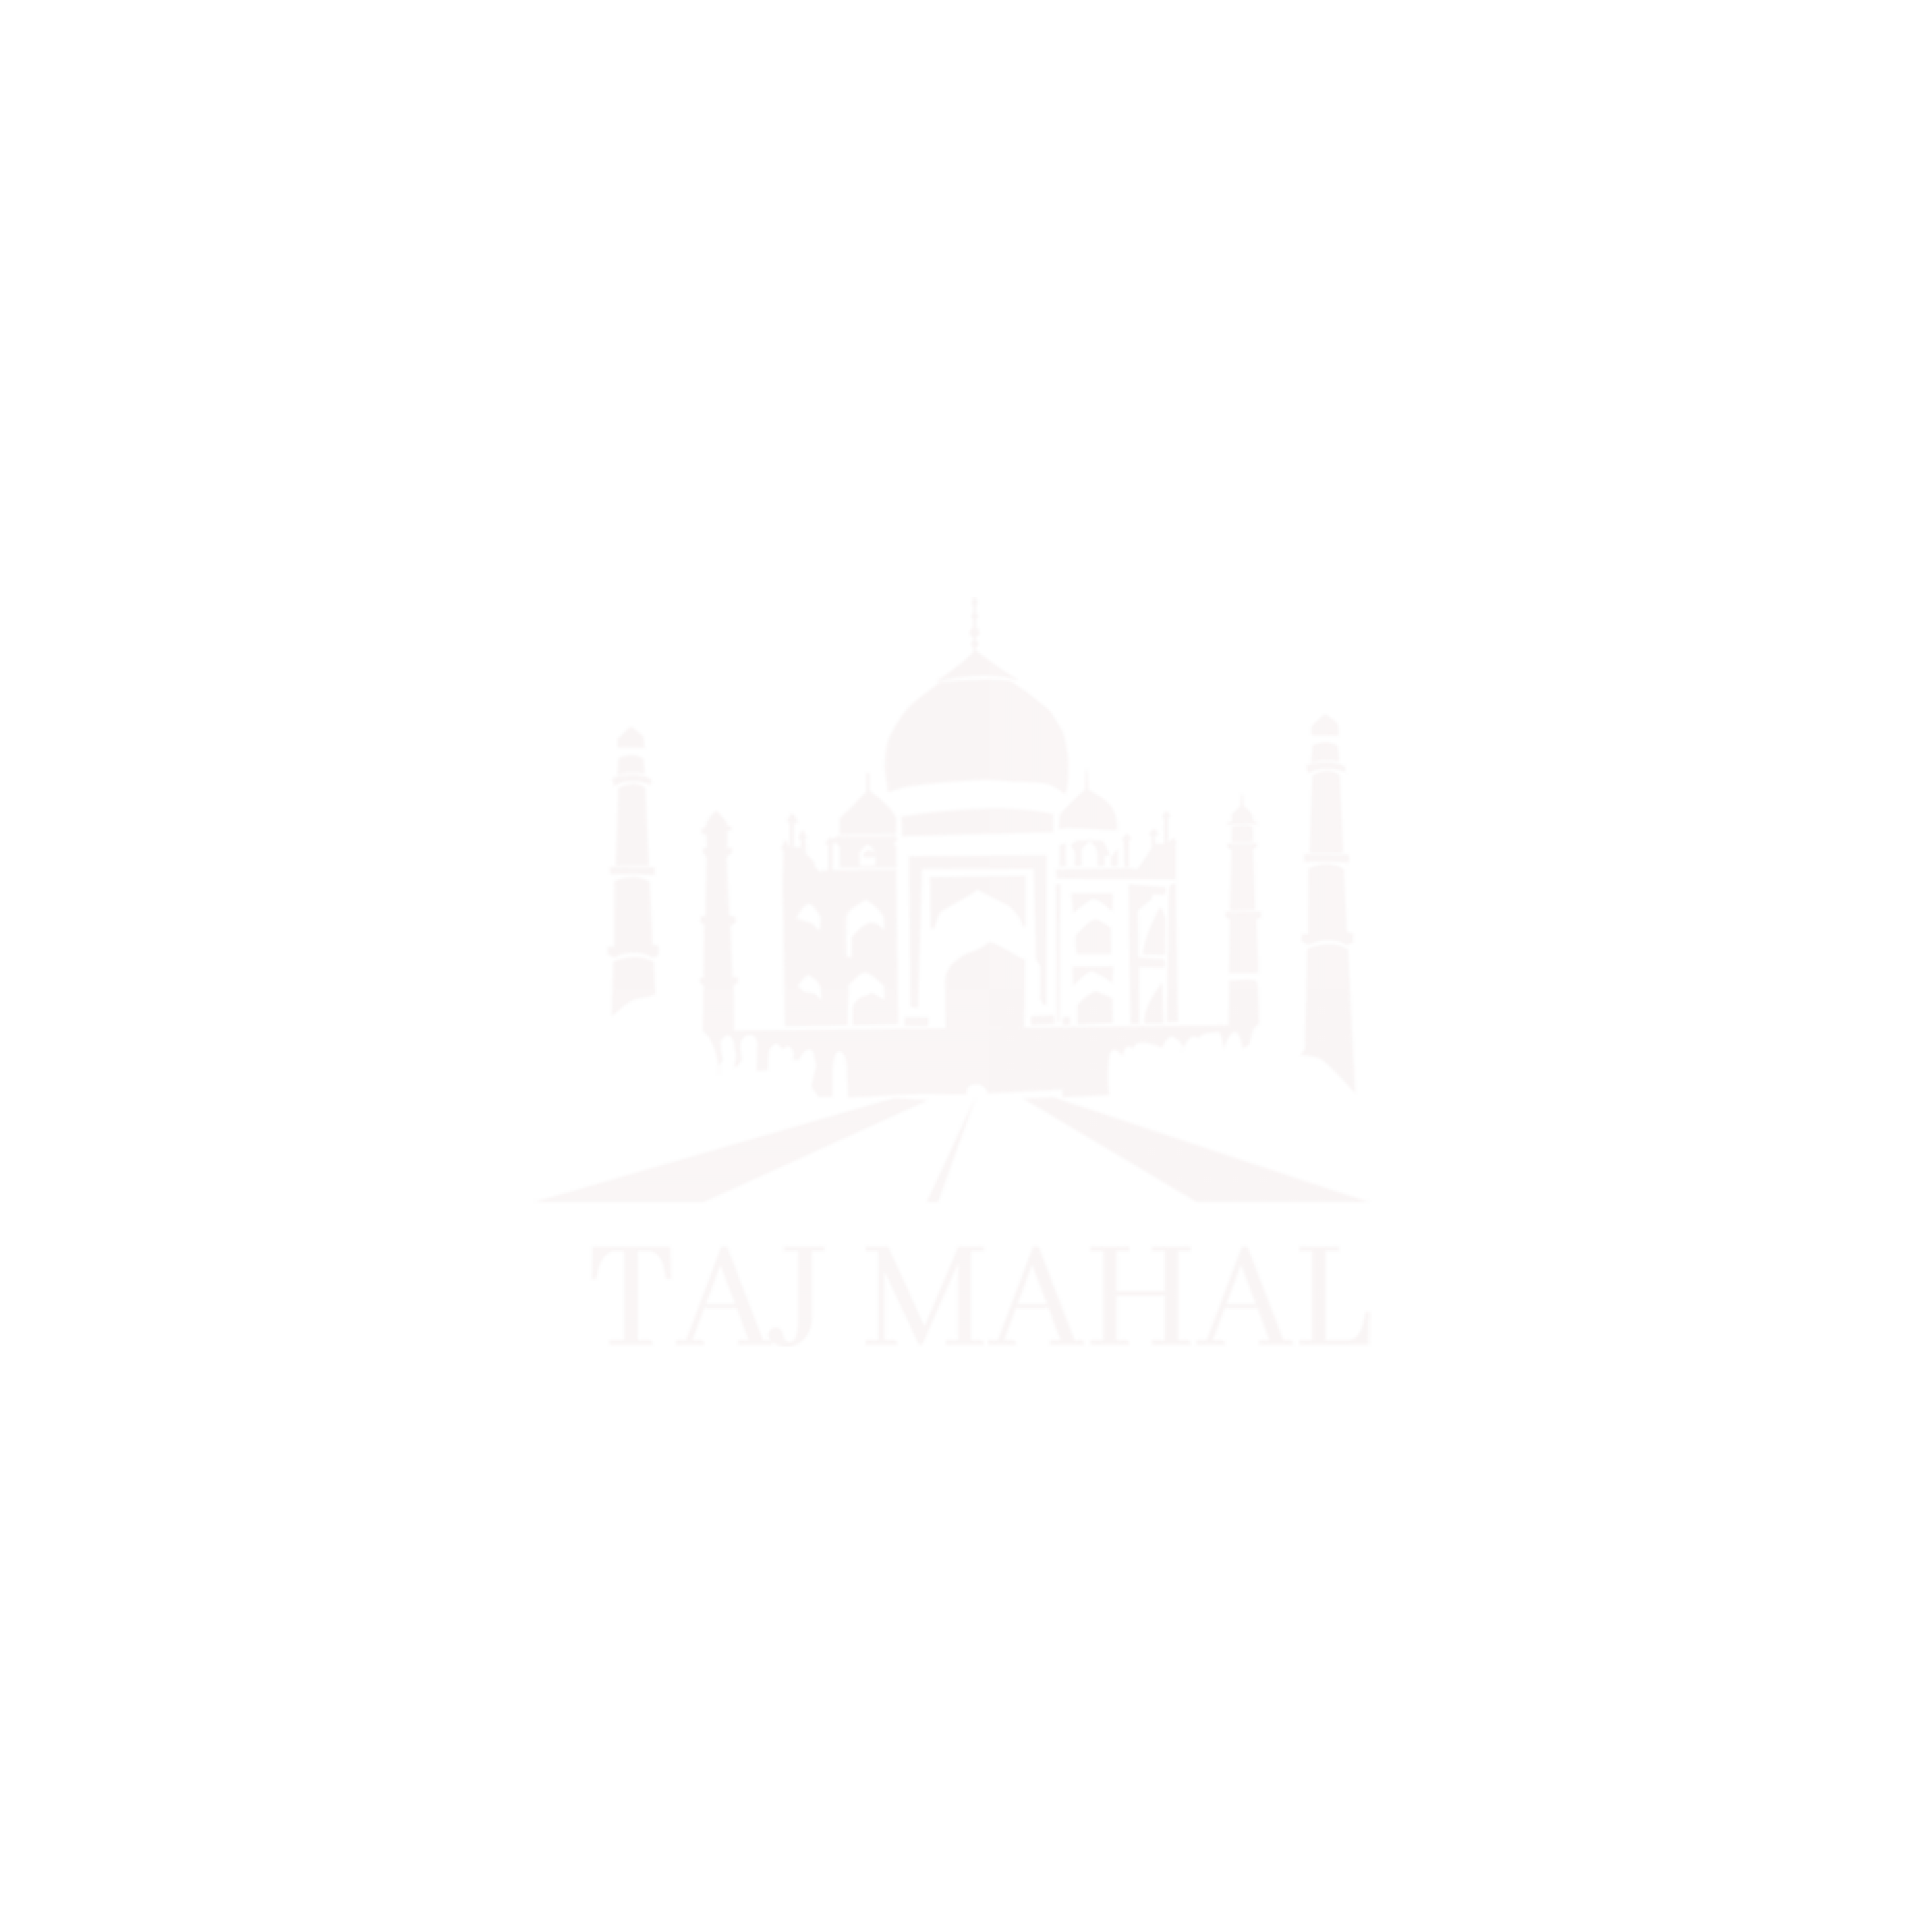 Taj-Mahal-Transparent-PNG